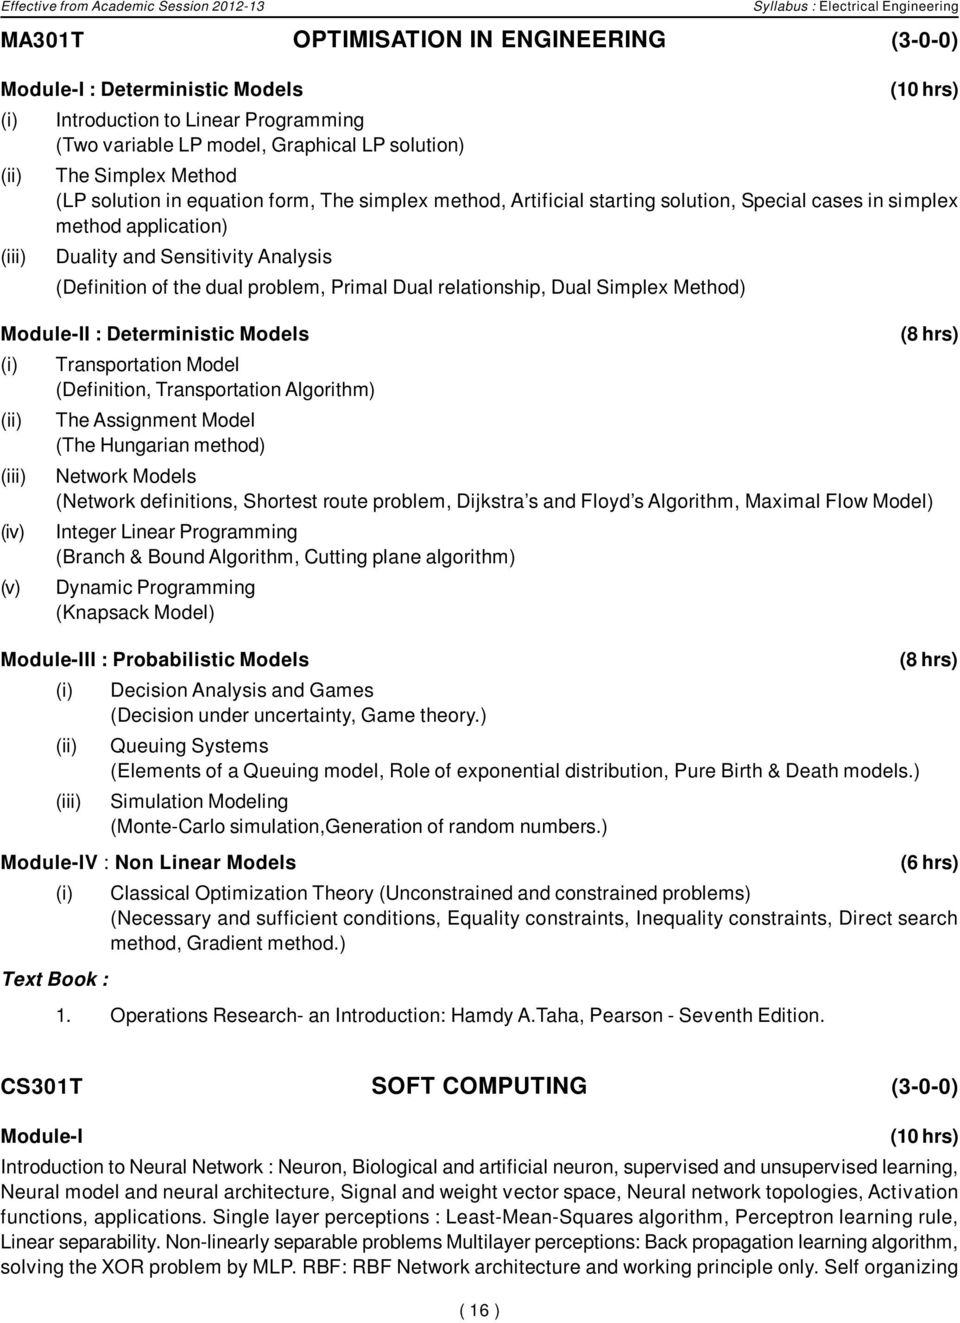 Course Structure 3rd And 4th Semesters Electrical Engineering Ee Electronic Circuit Analysis Design Neamen Download Sensitivity Definition Of The Dual Problem Primal Relationship Simplex Method